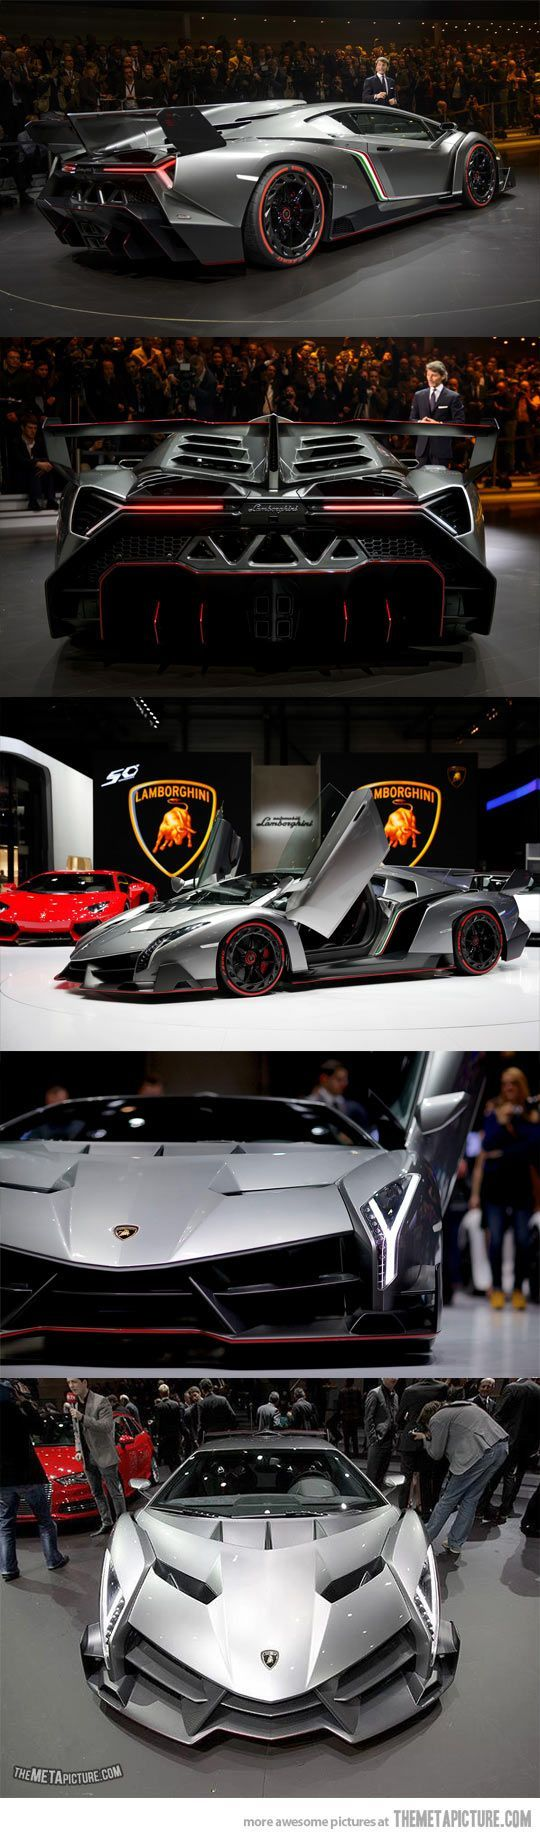 The 25 best coolest cars ideas on pinterest fancy cars cute cars and sports cars